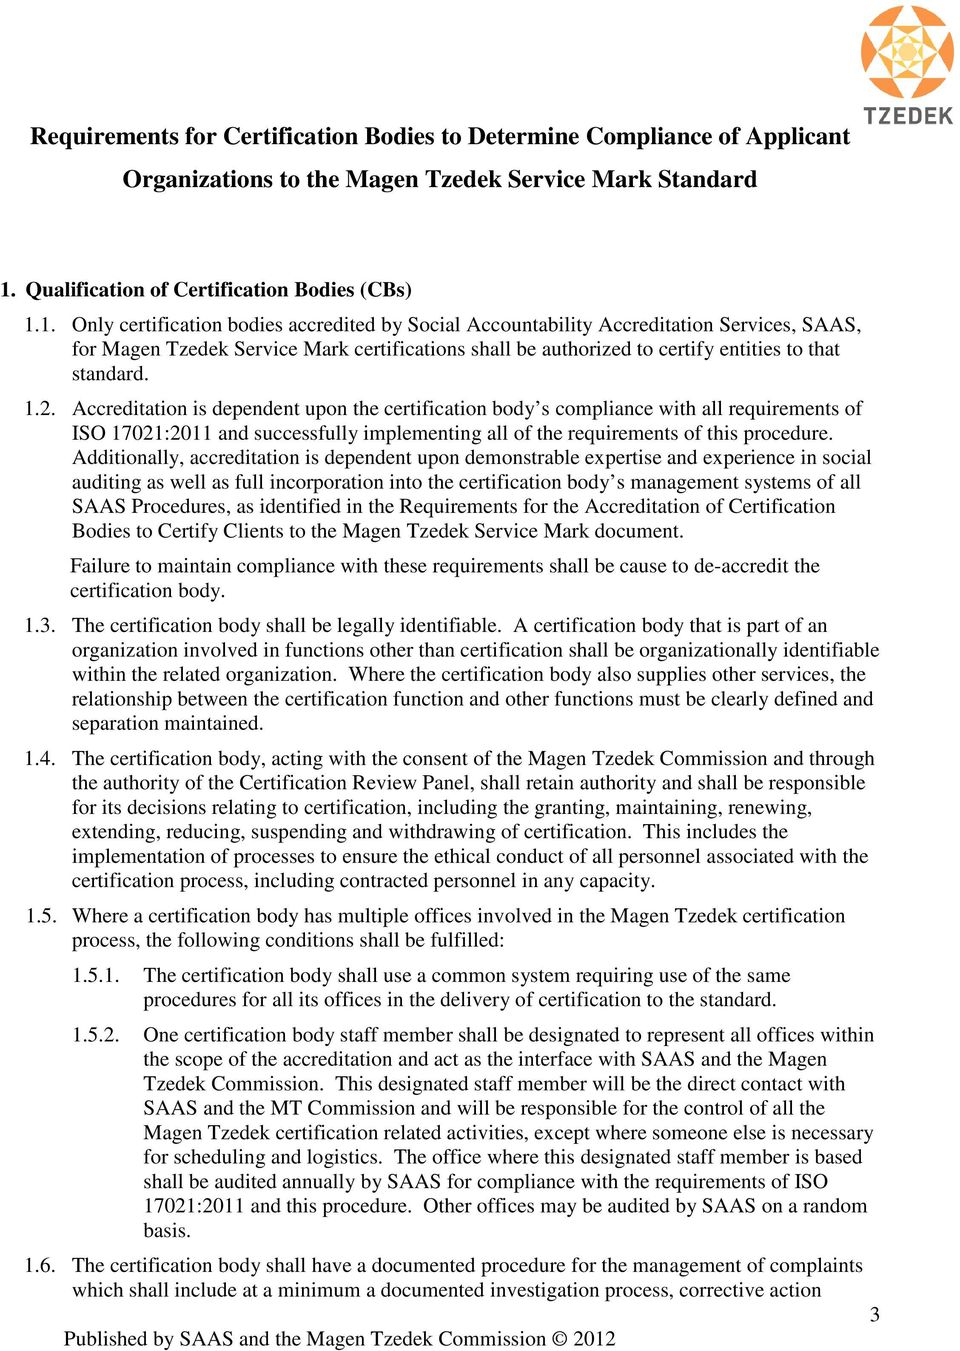 1. Only certification bodies accredited by Social Accountability Accreditation Services, SAAS, for Magen Tzedek Service Mark certifications shall be authorized to certify entities to that standard. 1.